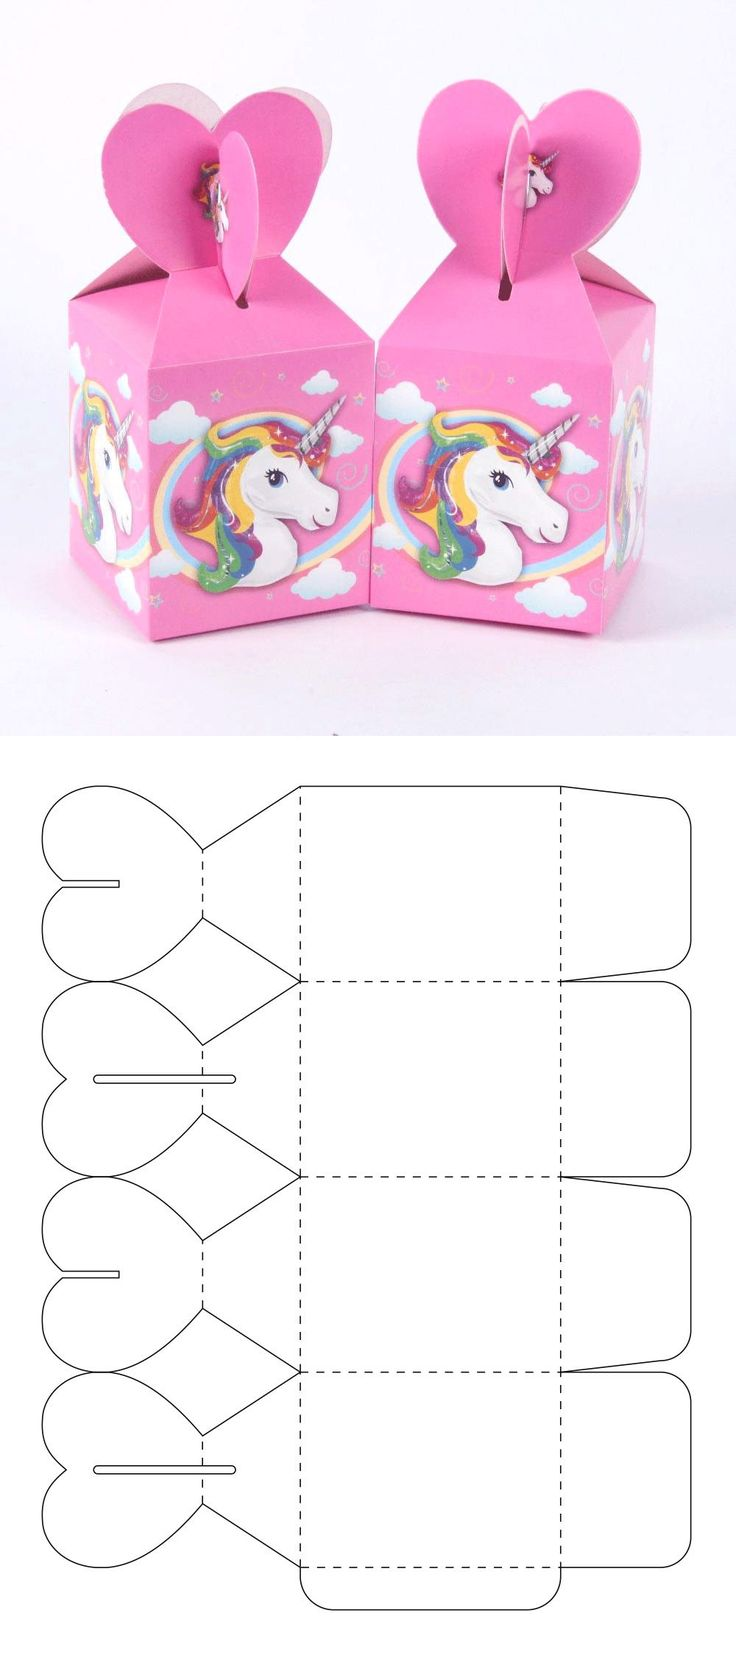 The best ideal box for your candy bar or to give candies at parties. Cool Paper Crafts, Paper Crafts Origami, Diy Crafts For Gifts, Foam Crafts, Diy Gift Box Template, Paper Box Template, Box Templates, Origami Templates, Creative Box